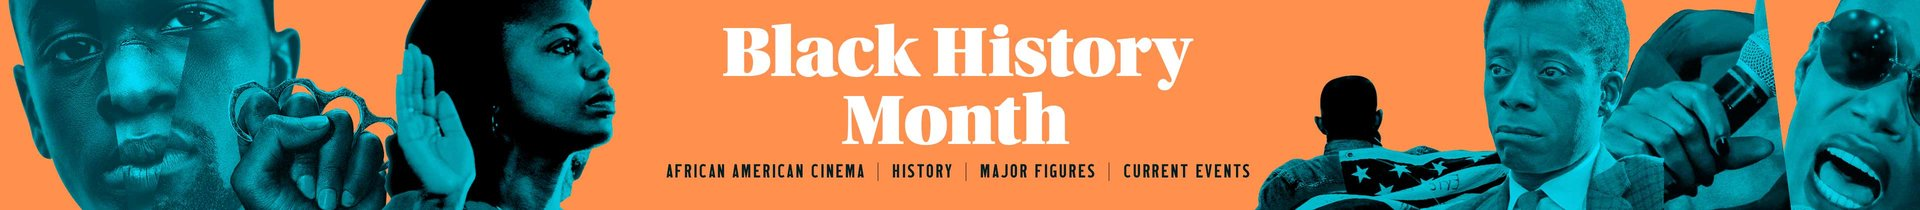 Watch Black History Month Selected Films on Kanopy